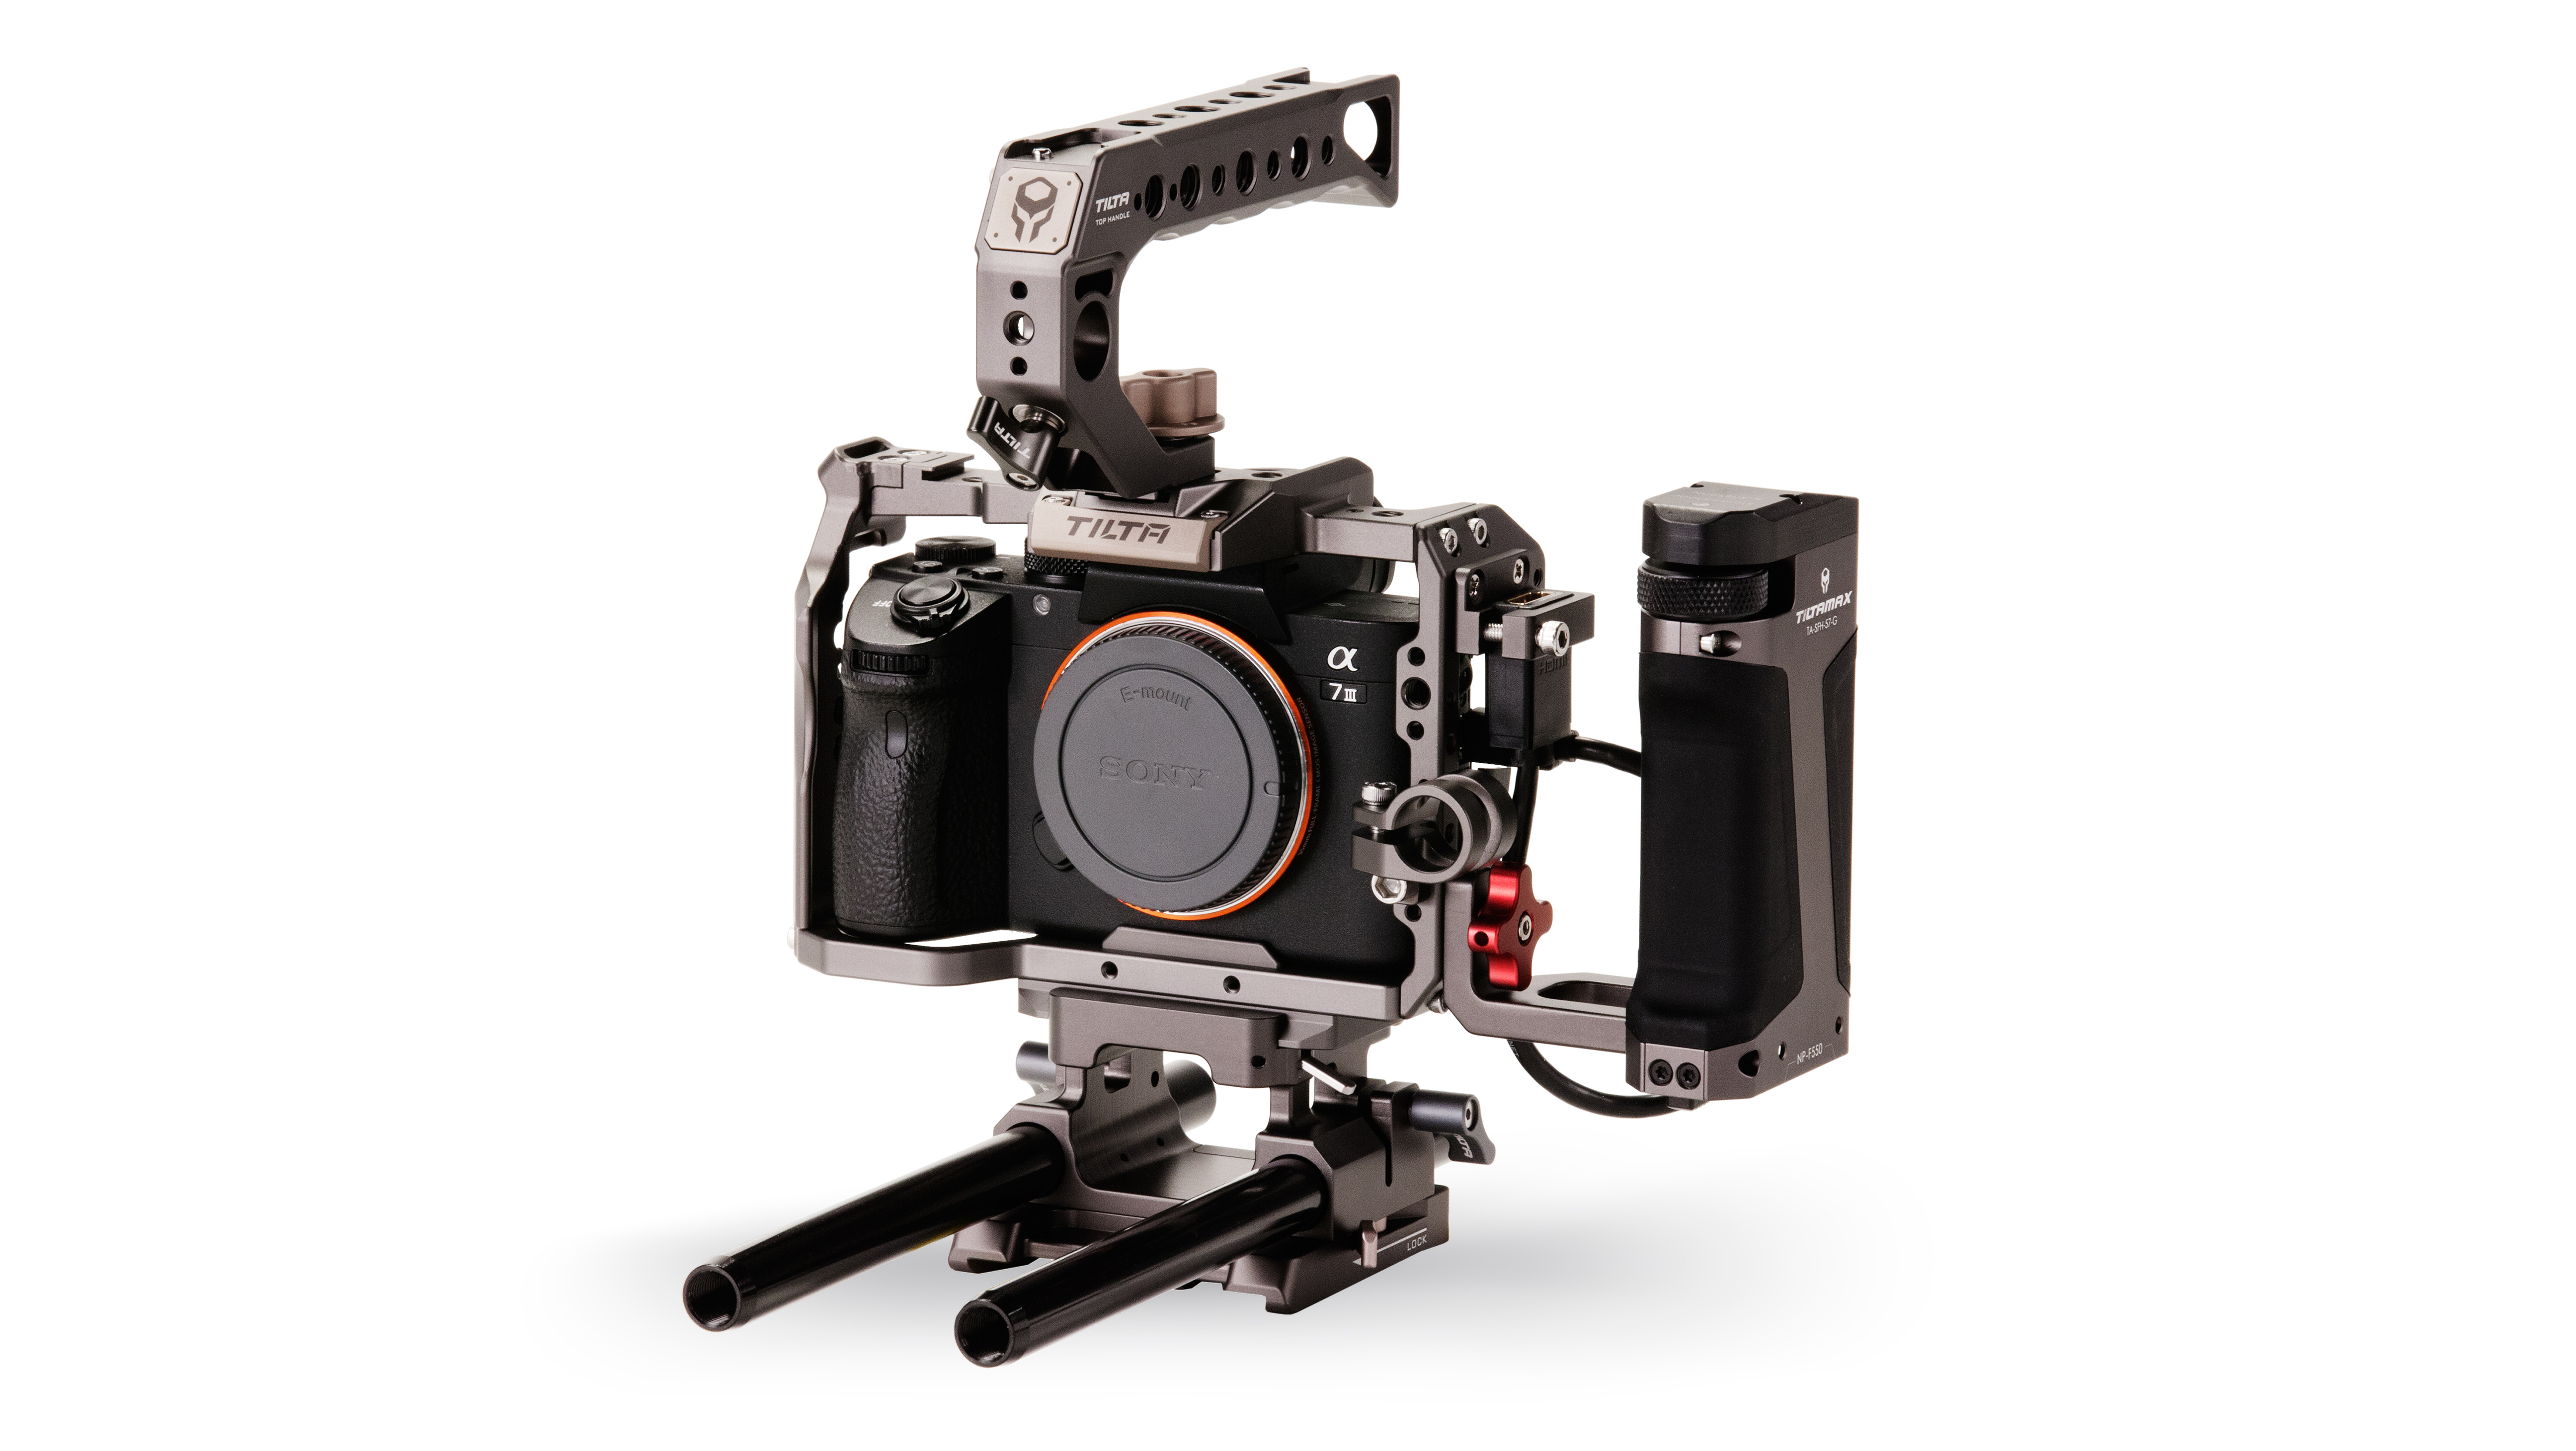 Tiltaing Sony a7/a9 Series Kit C